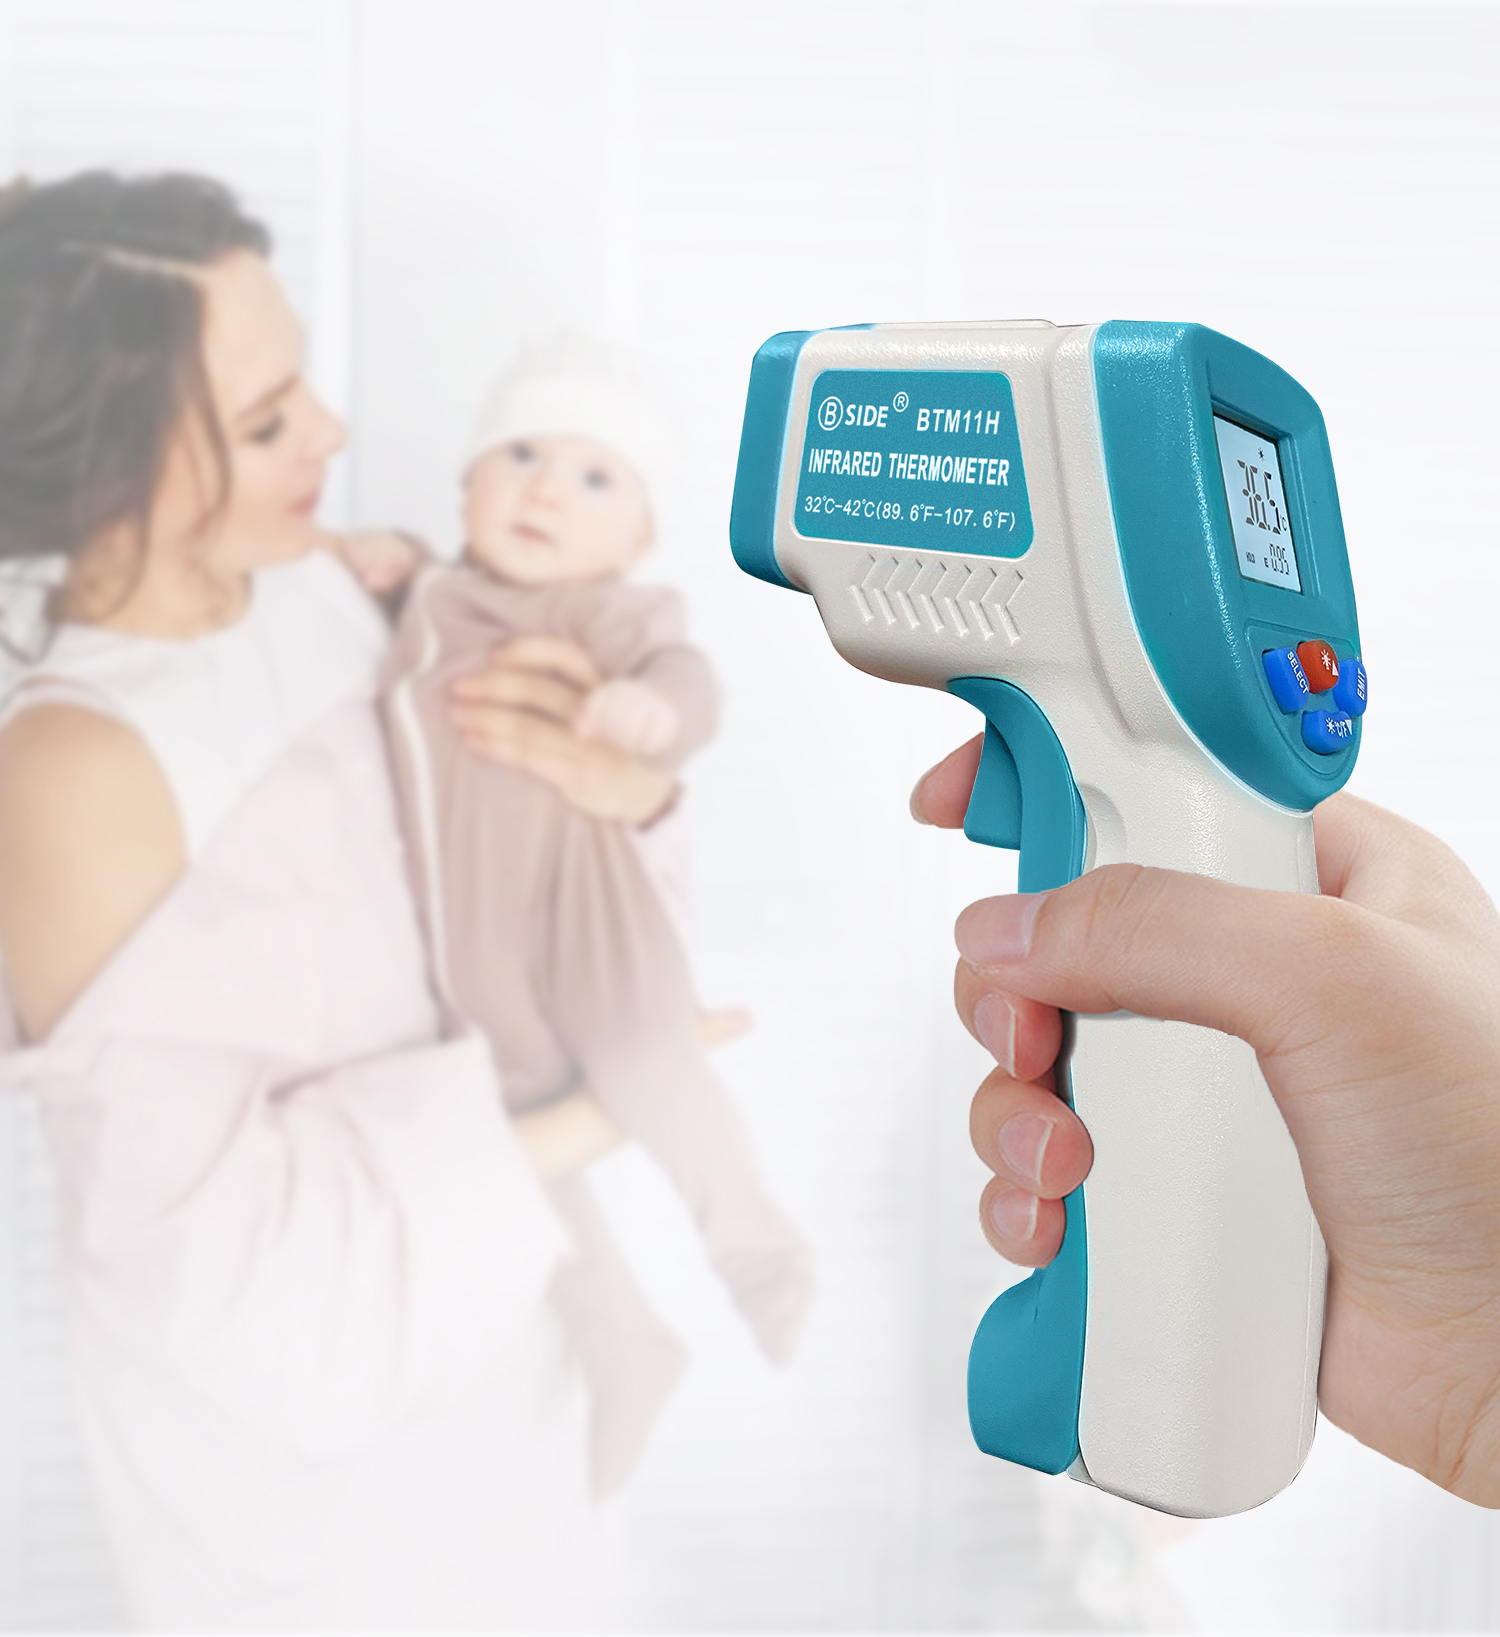 Digital Forehead Thermometer Gun Infrared Forehead Gun Body Non-contact Temperature Gun Measurement Device For Baby Adult